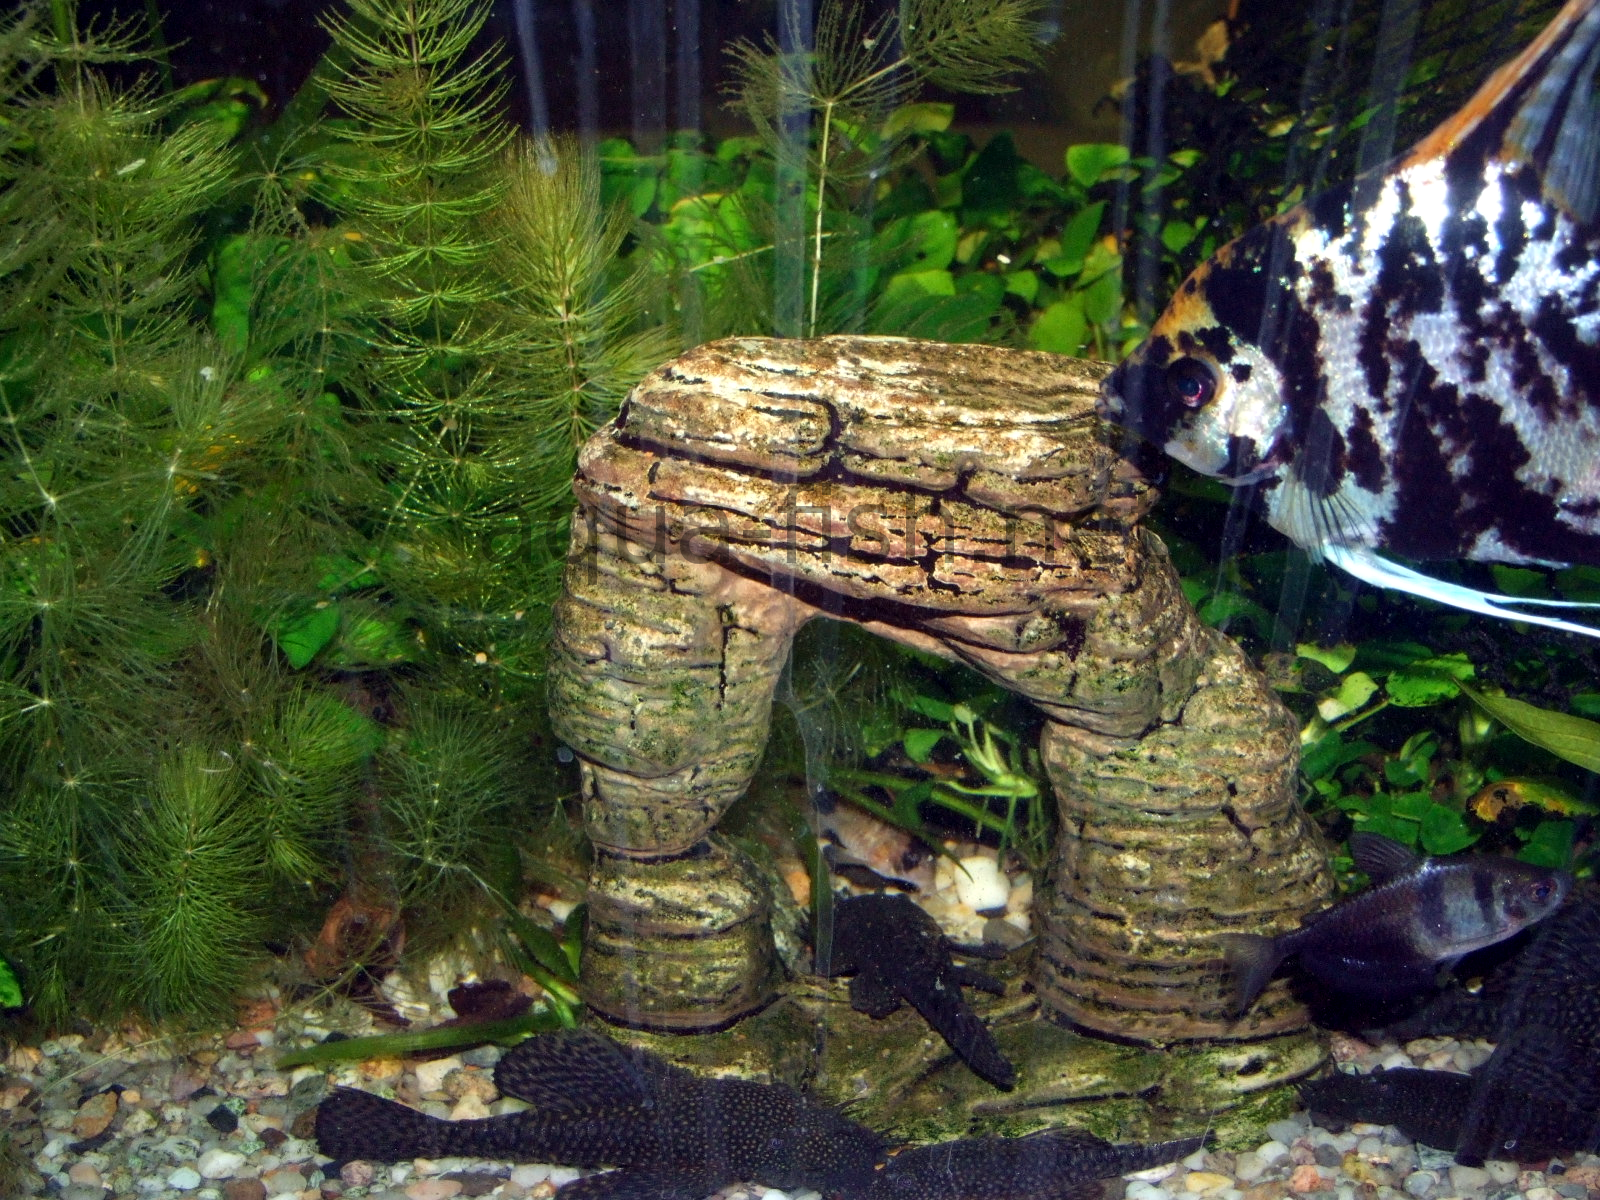 Fish aquarium guide -  Aquarium Decorations Resized Image 4